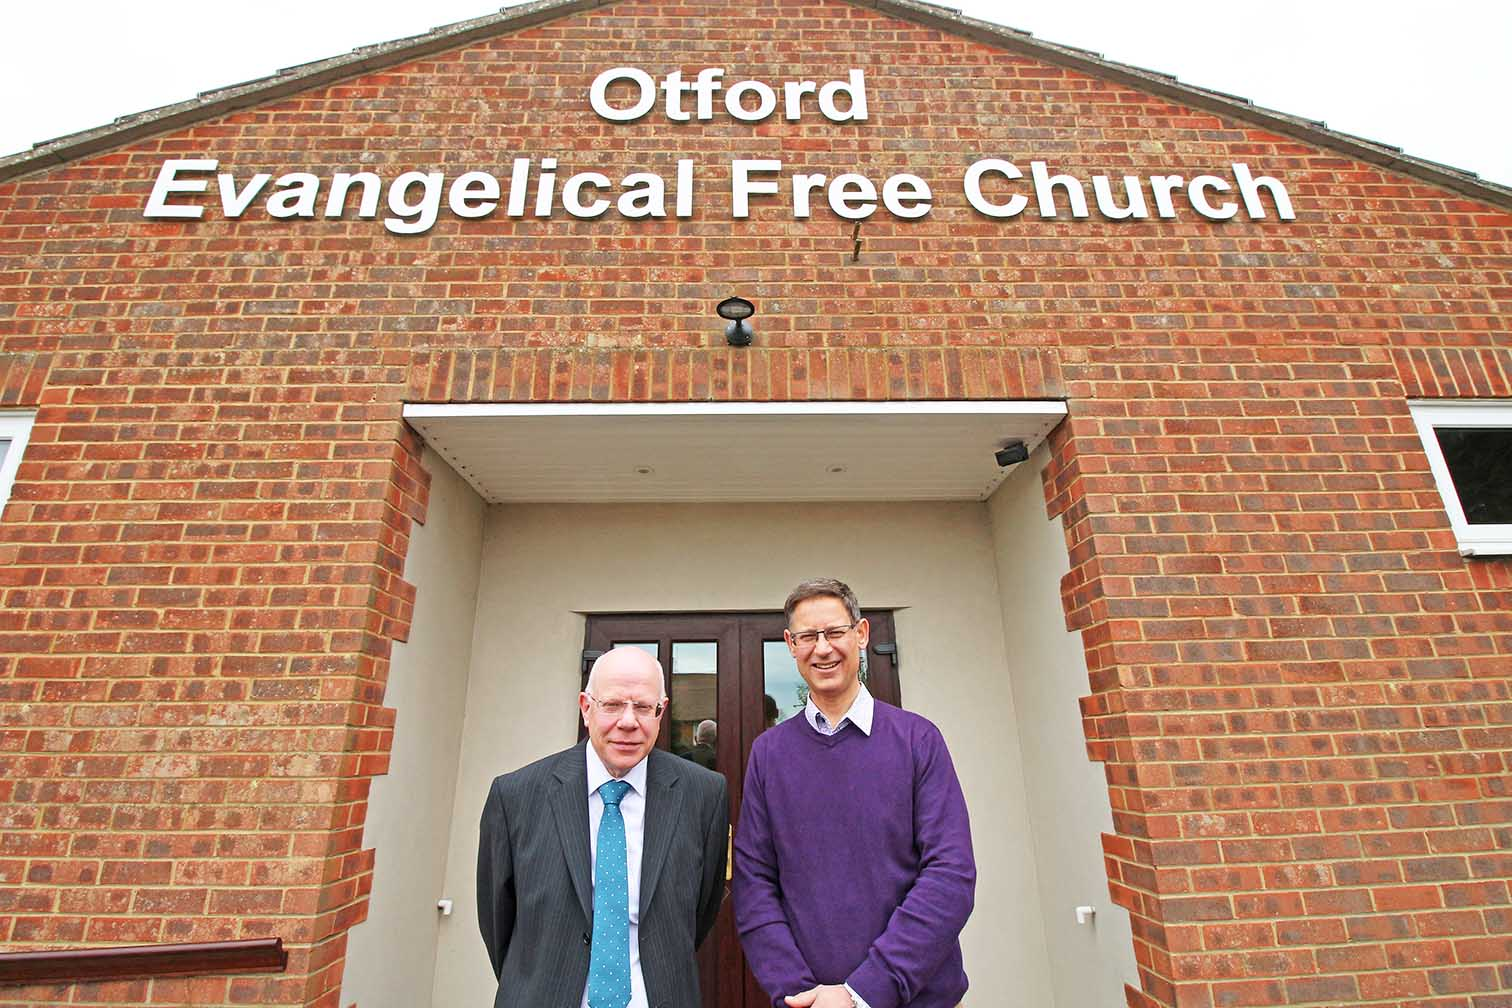 Kevin and Stuart - FIEC Church Elders in Otford Kent